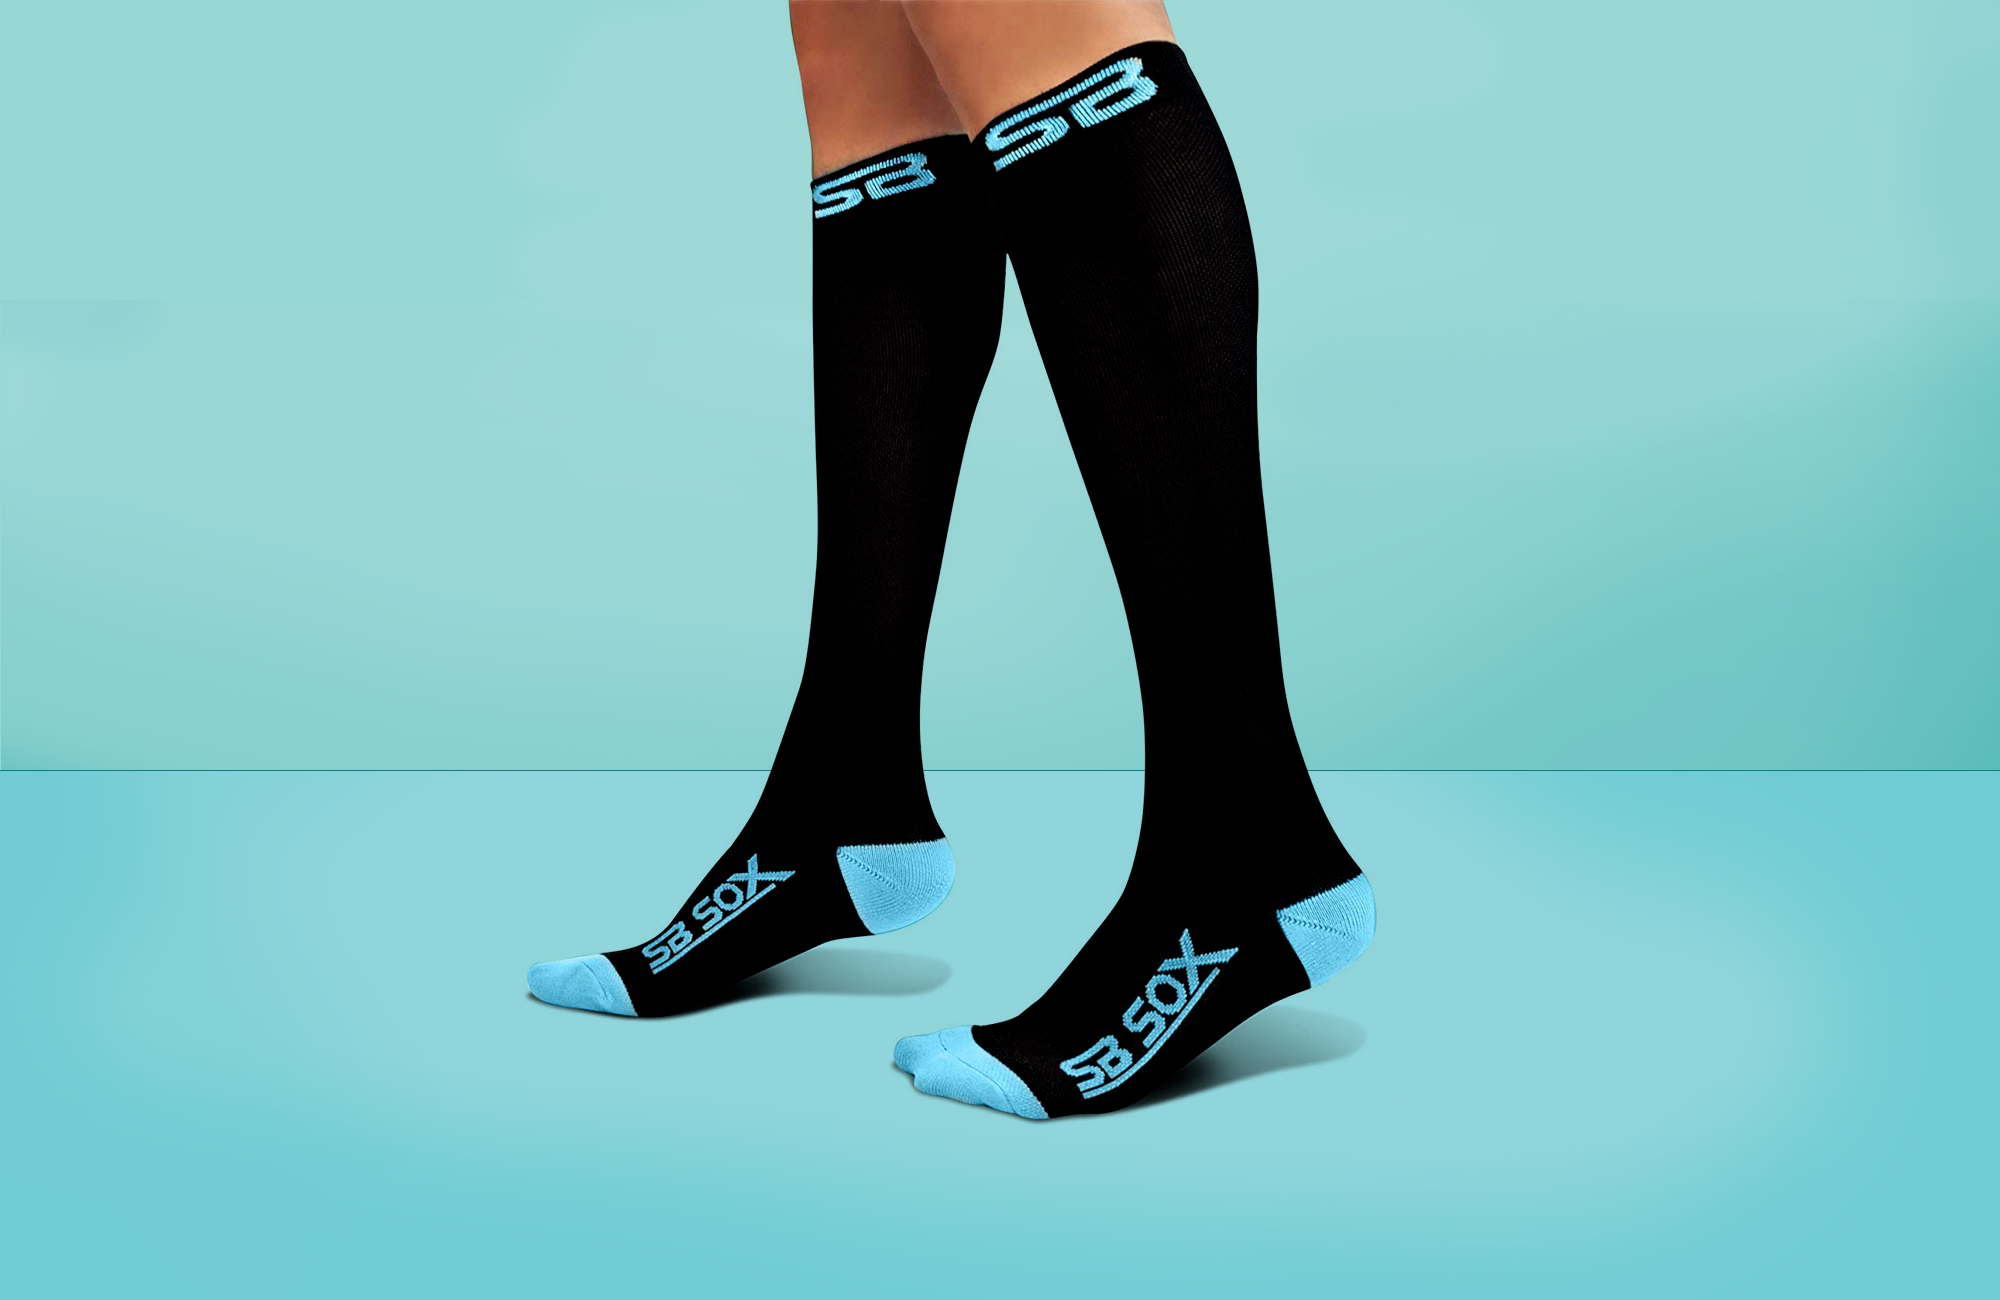 9 Best Compression Socks for Women to